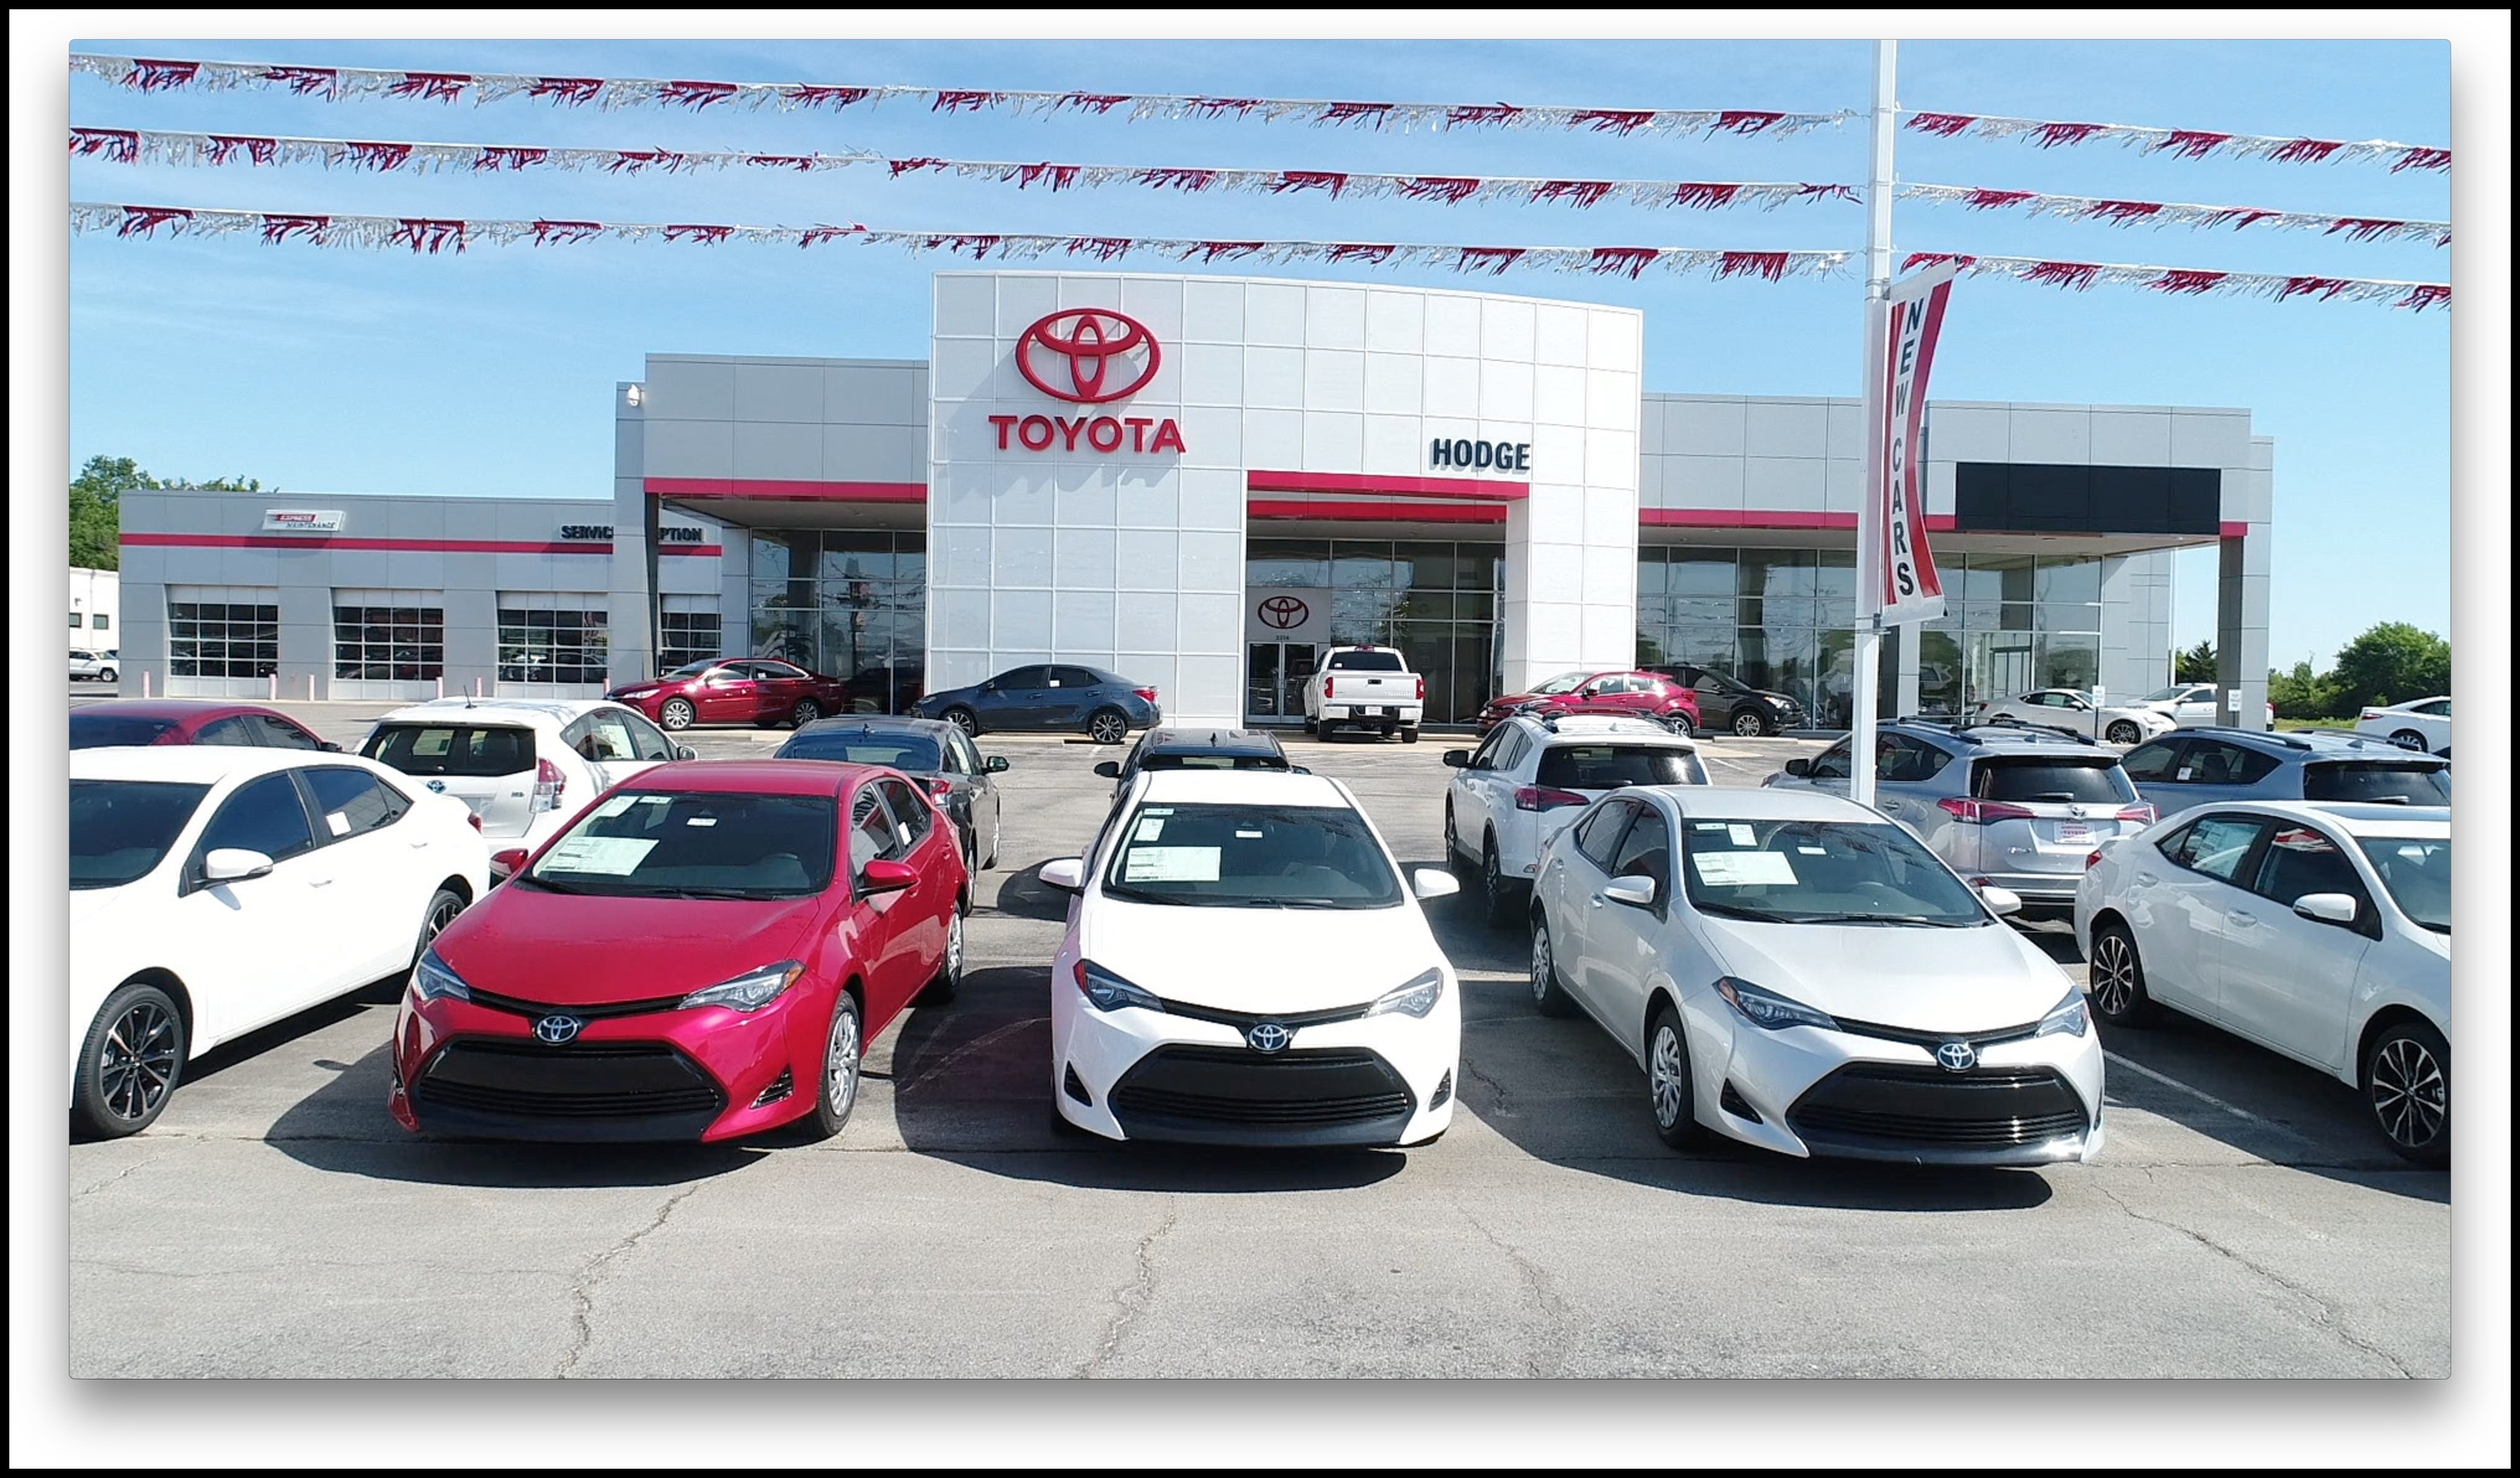 James Hodge Toyota